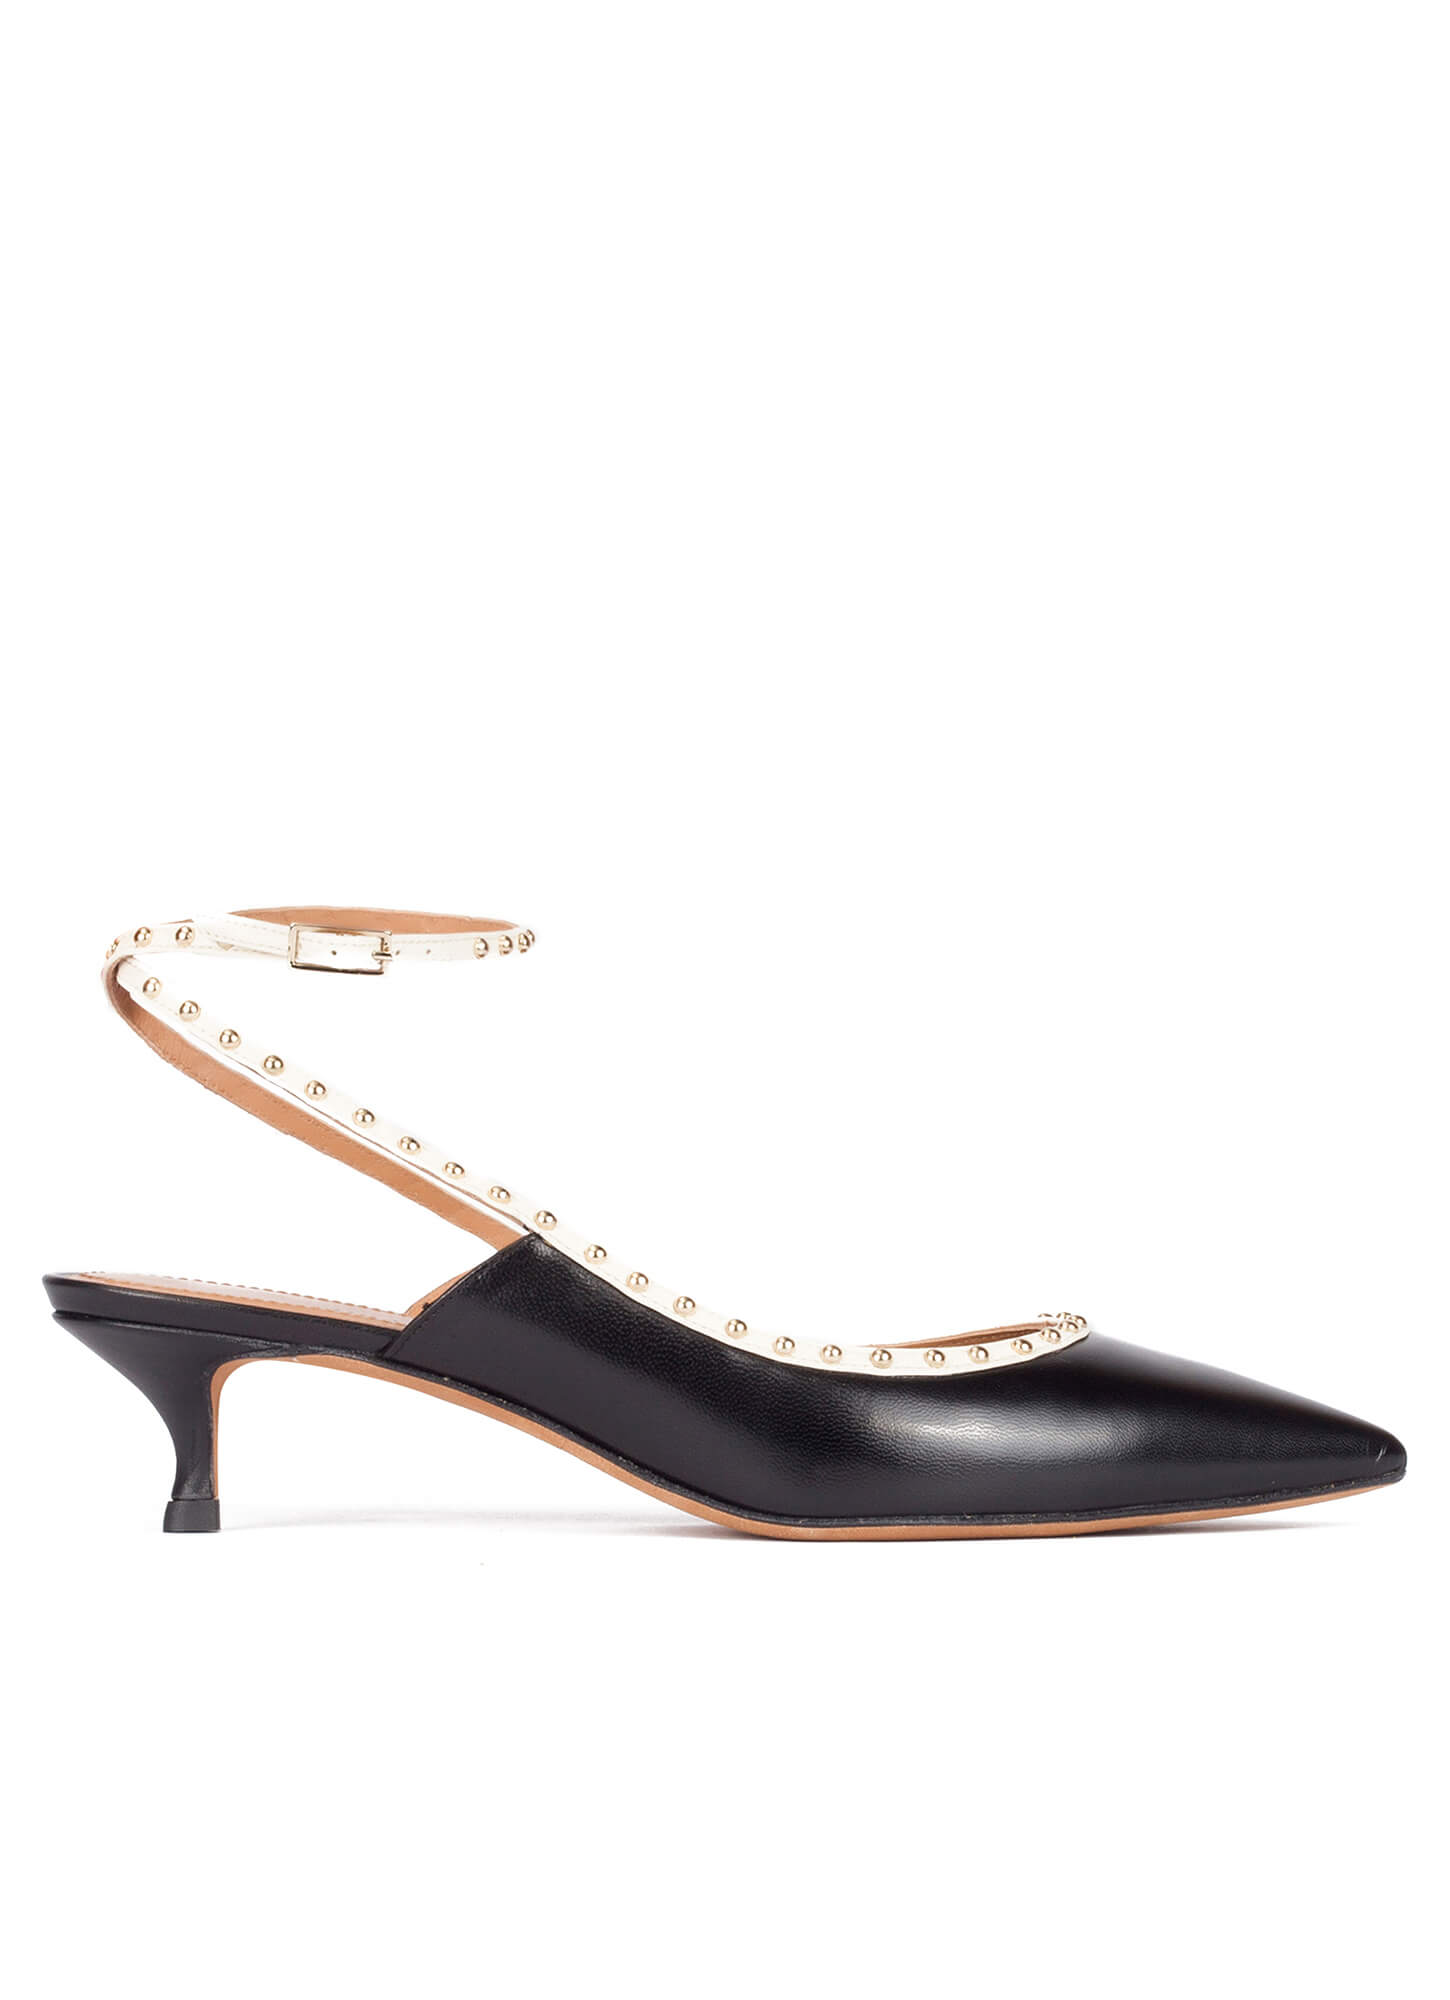 Black leather ankle strap mid heel pointy toe pumps . PURA LOPEZ